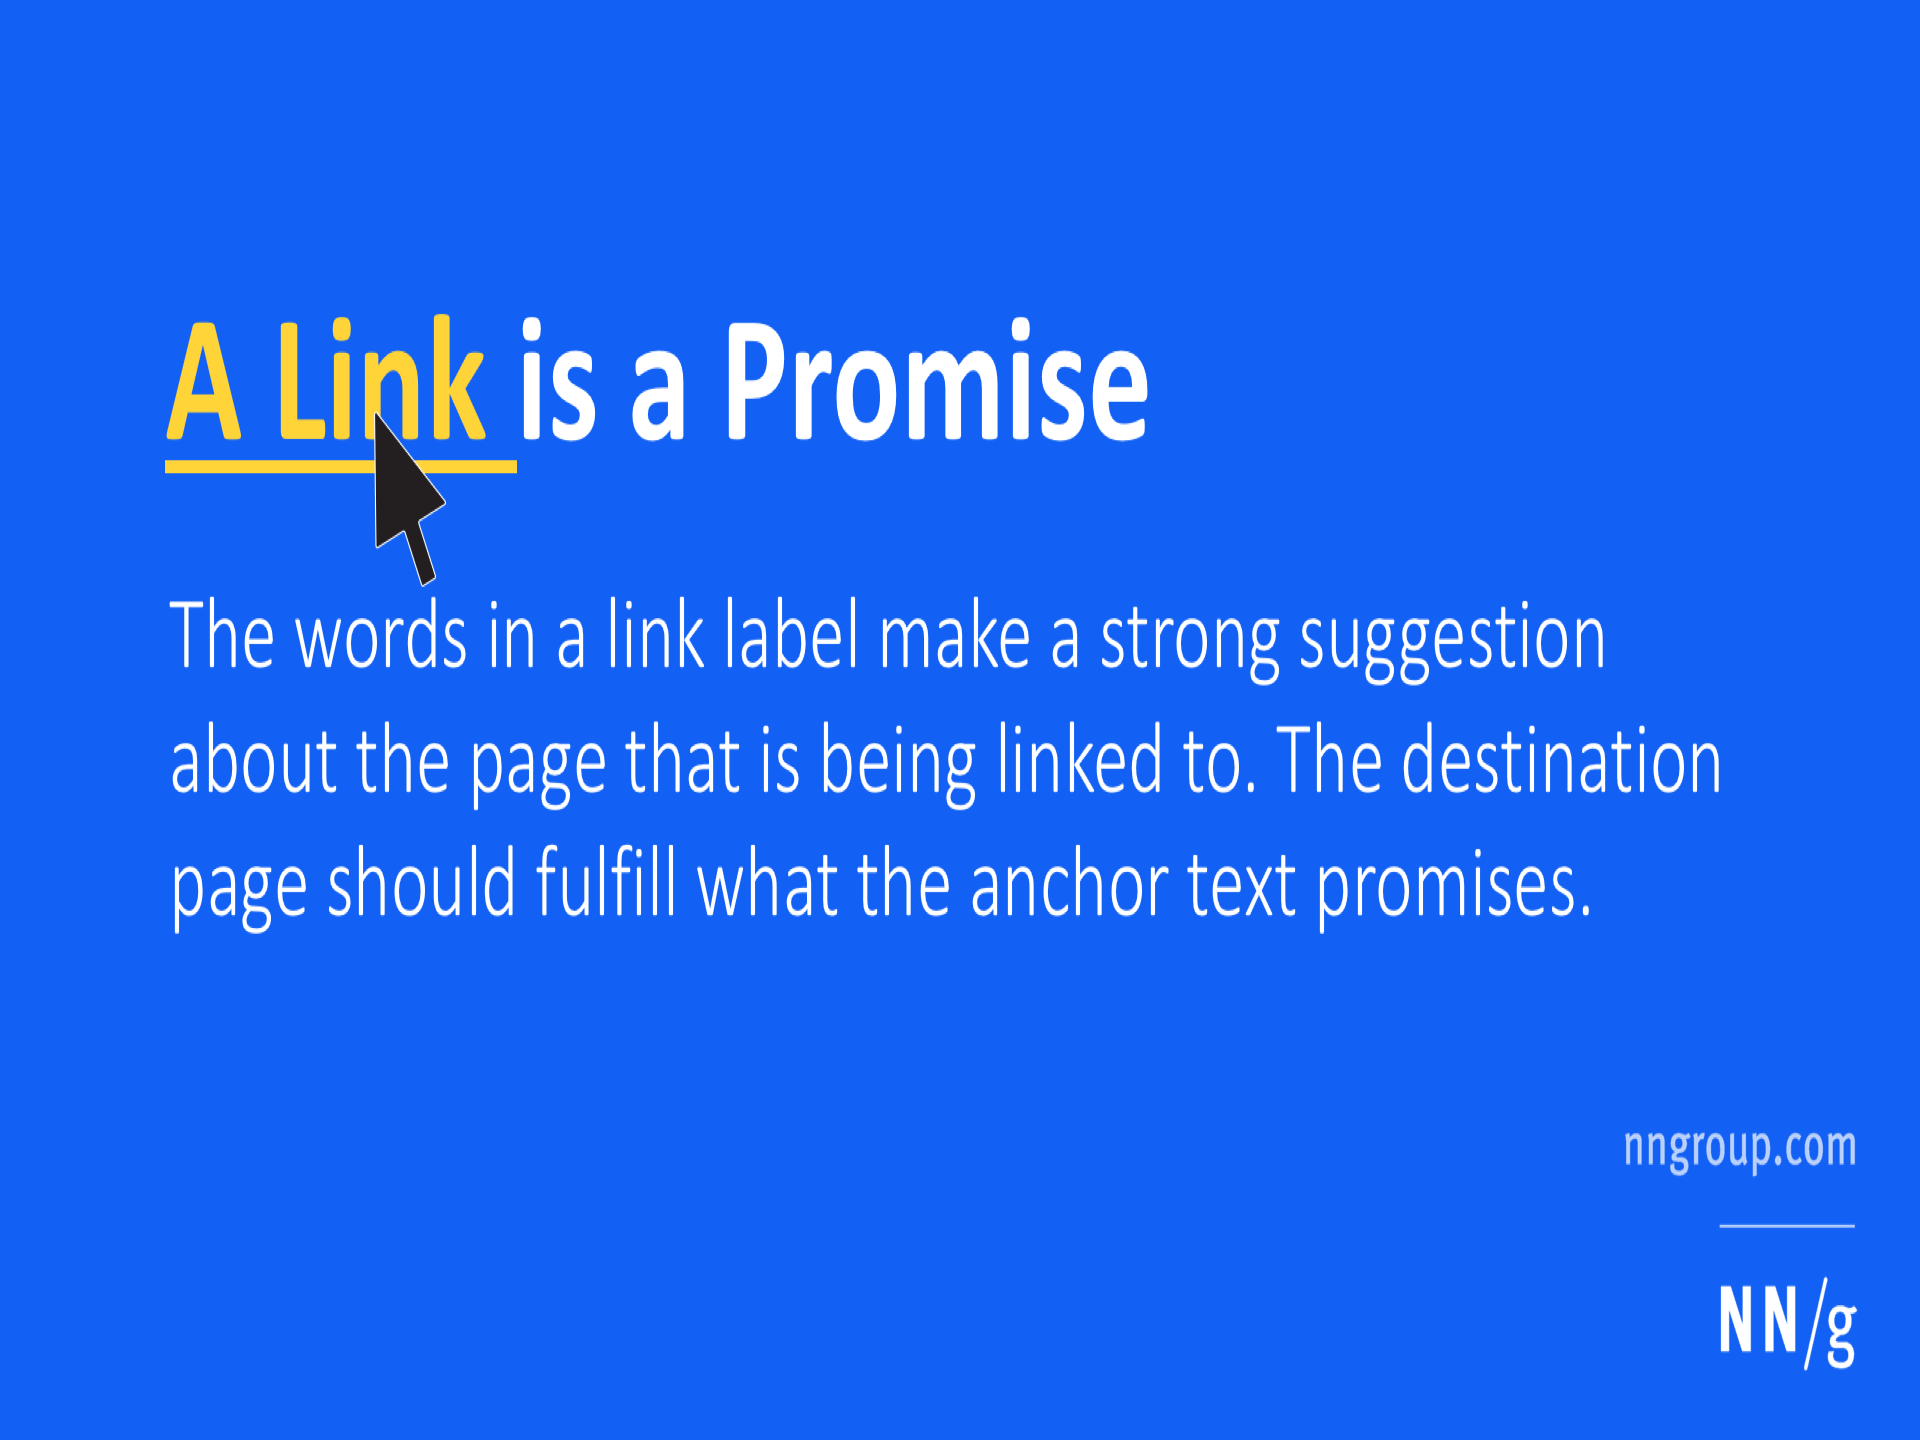 A Link is a Promise